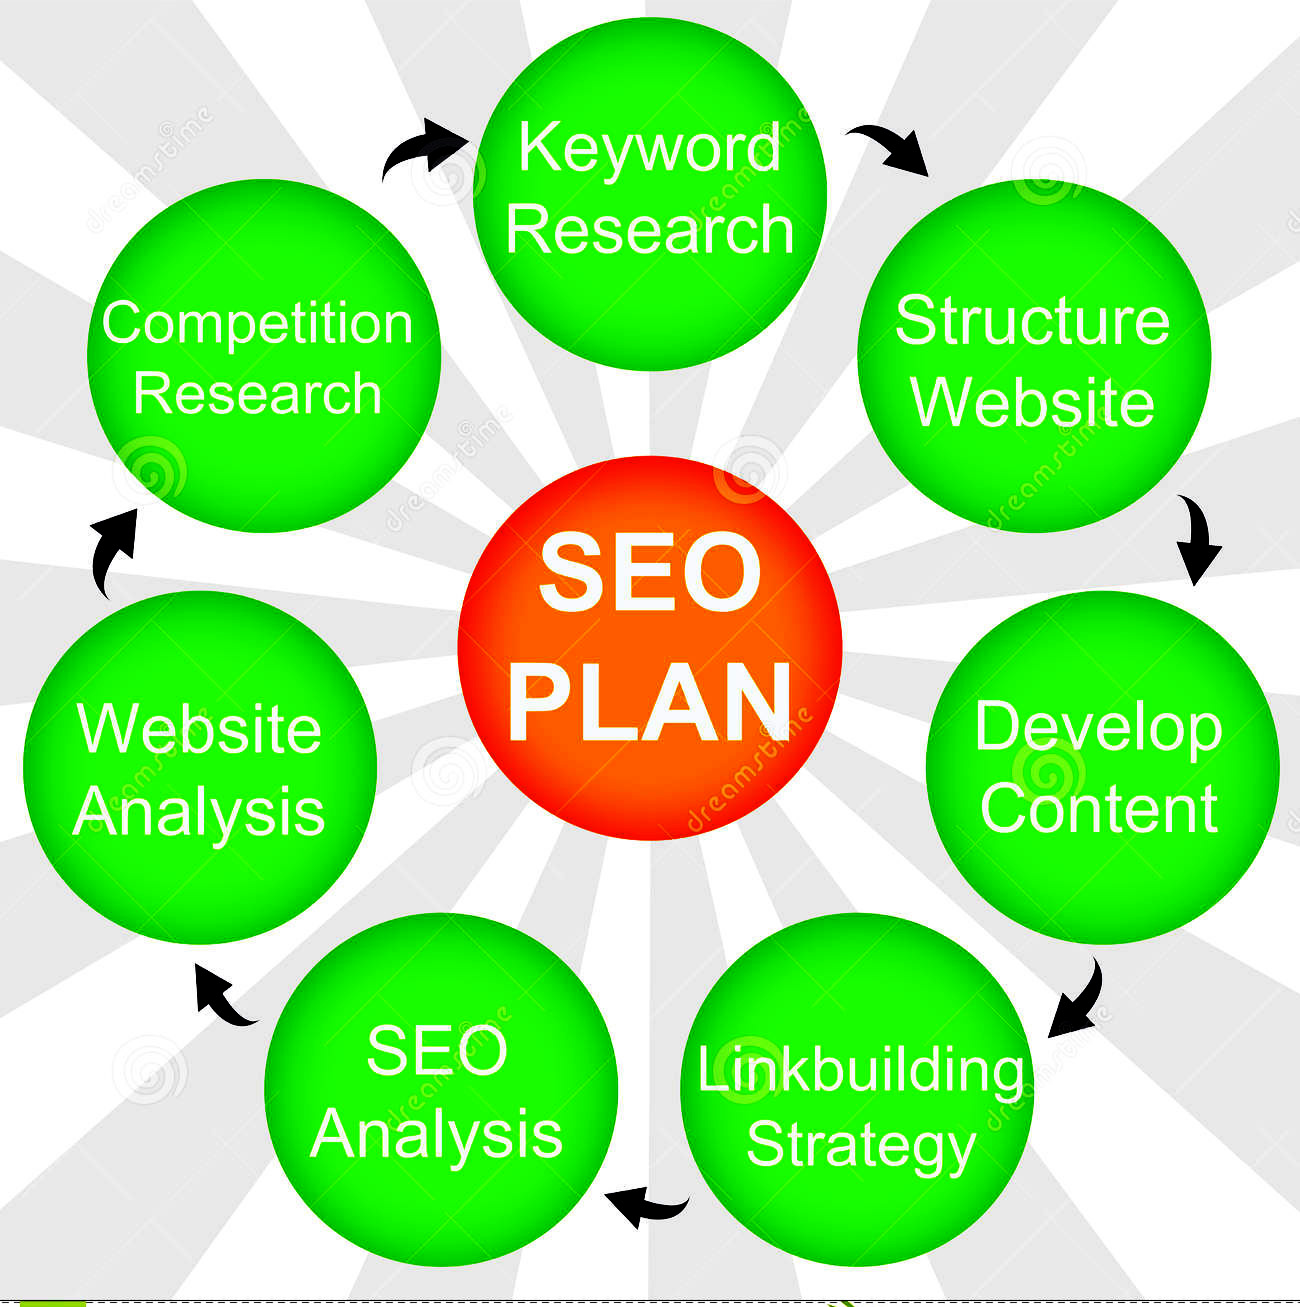 I am a Search Engine Optimization SEO expert